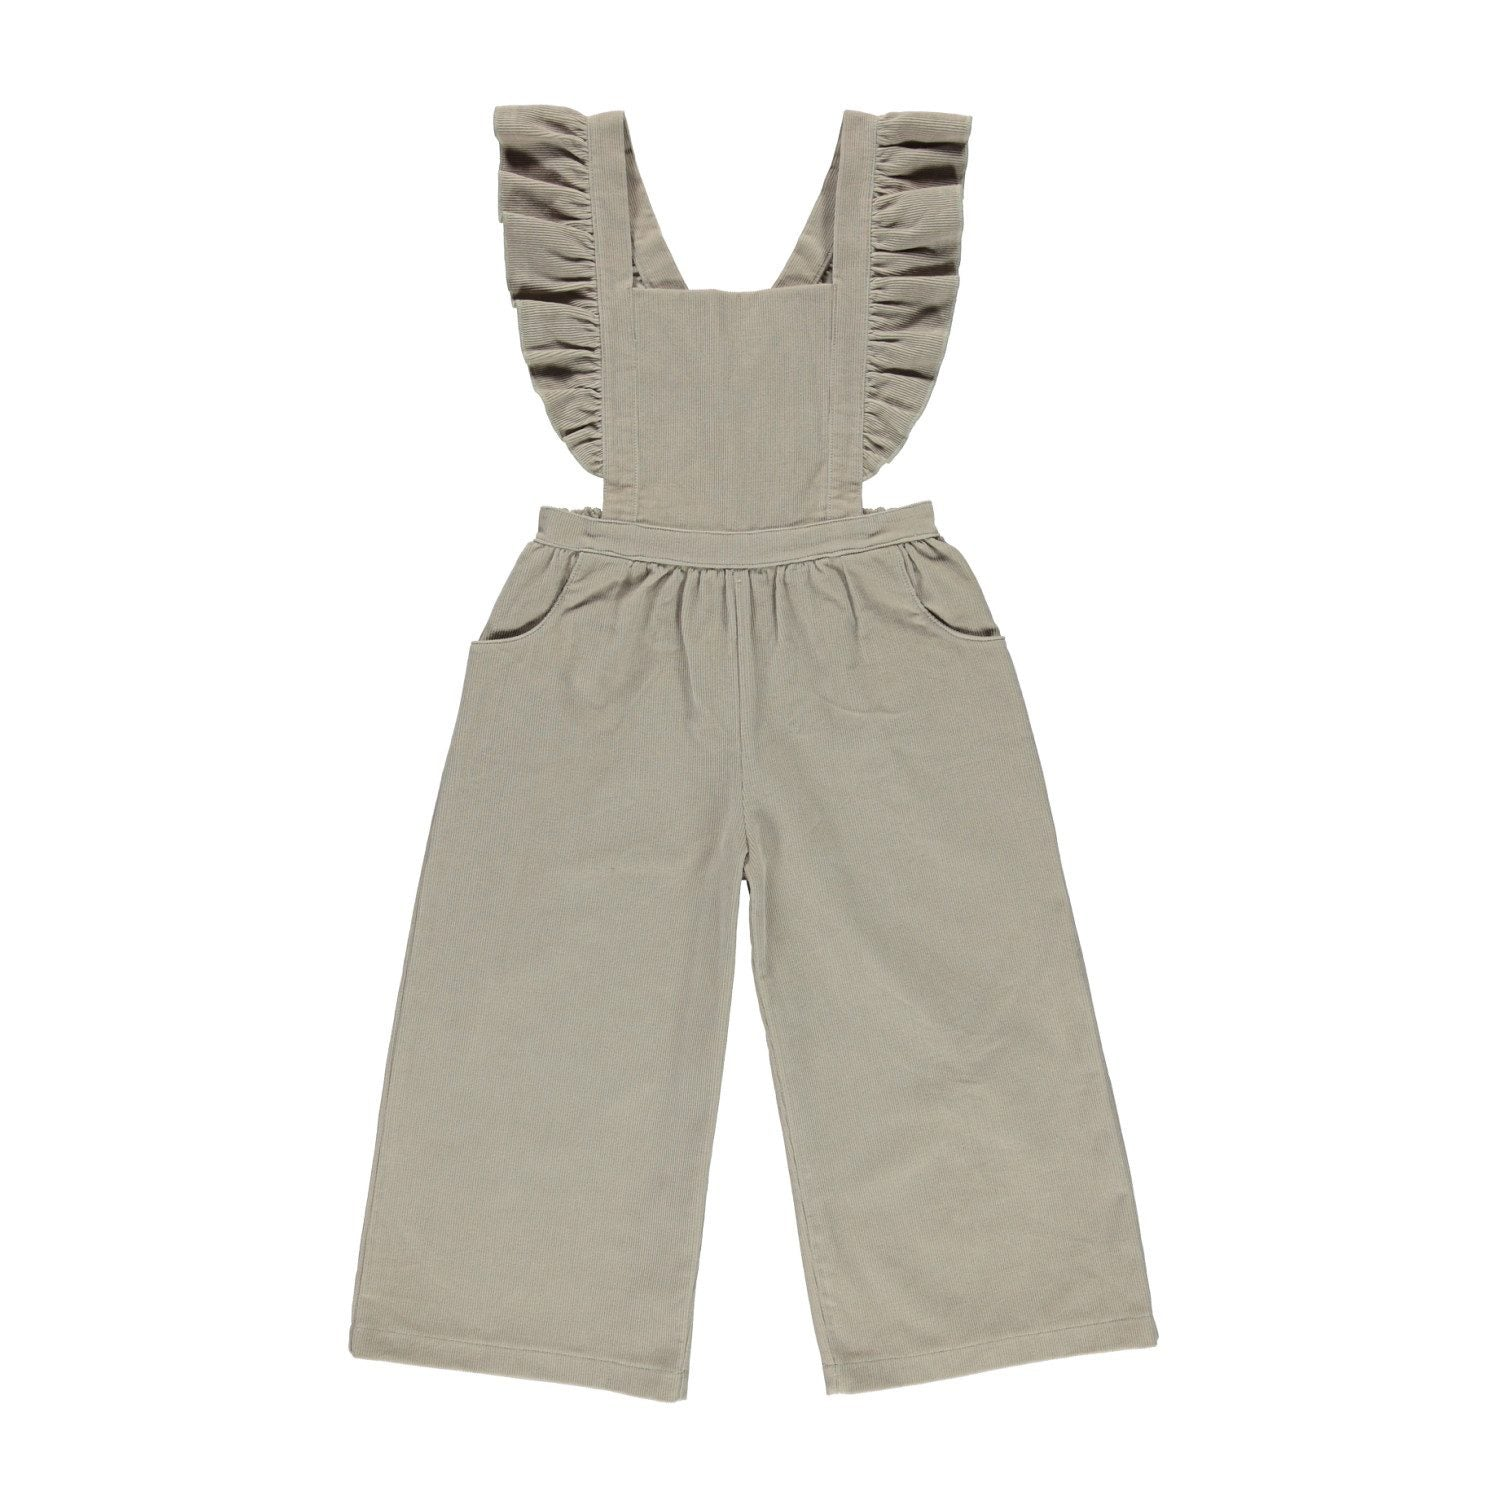 ORGANIC HARPER ROMPER, SIMPLE TAUPE | BEBE ORGANIC - Spinel Boutique